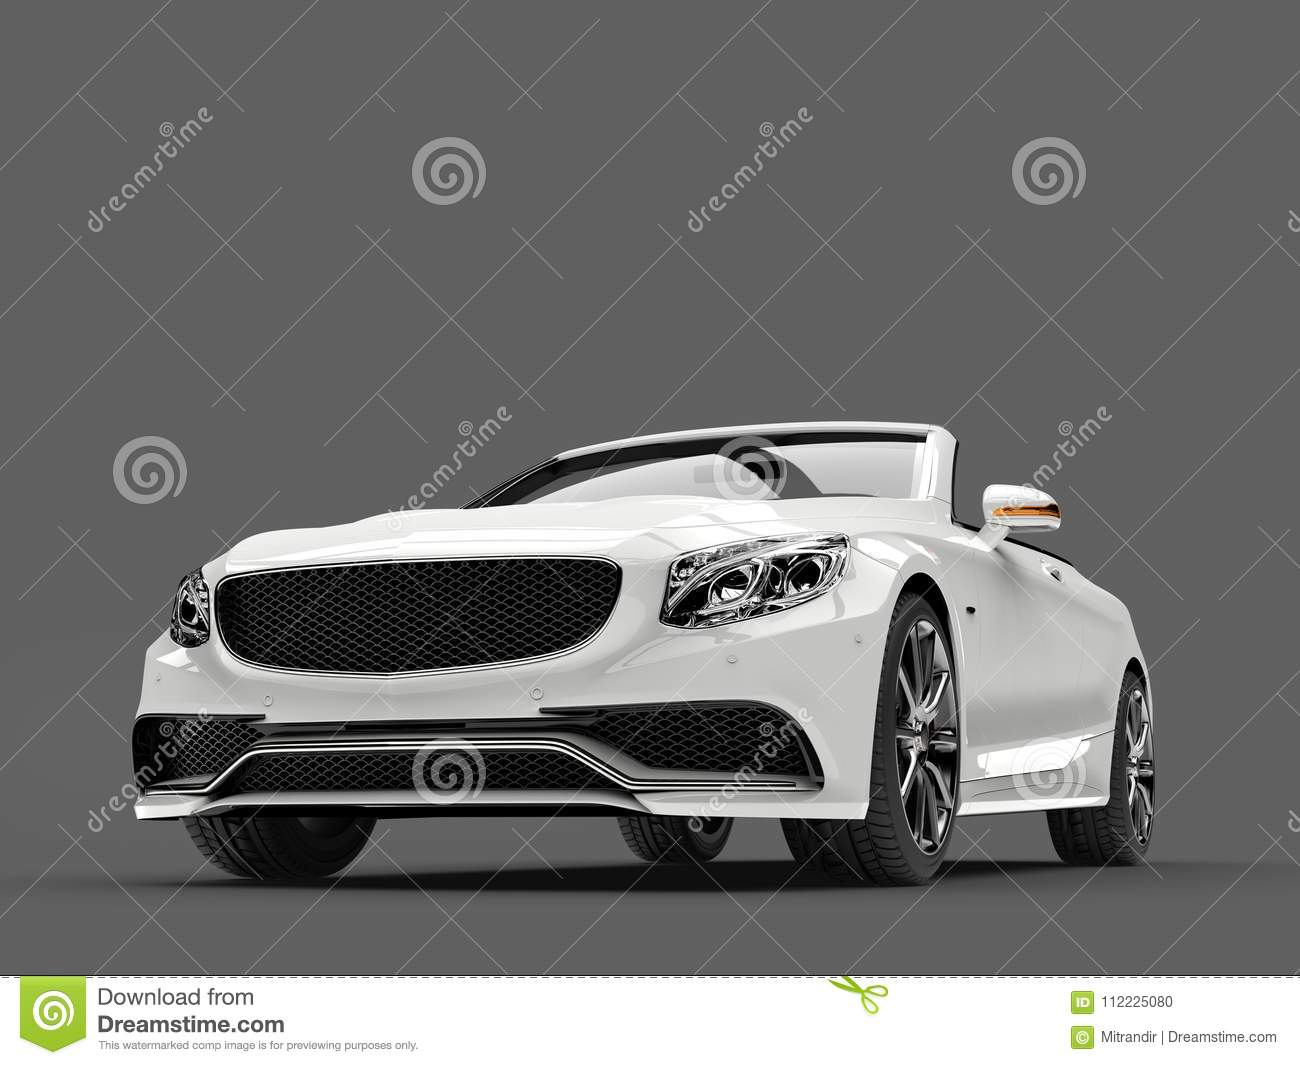 download angel white modern luxury convertible car front low angle shot stock illustration illustration - Convertible Angle